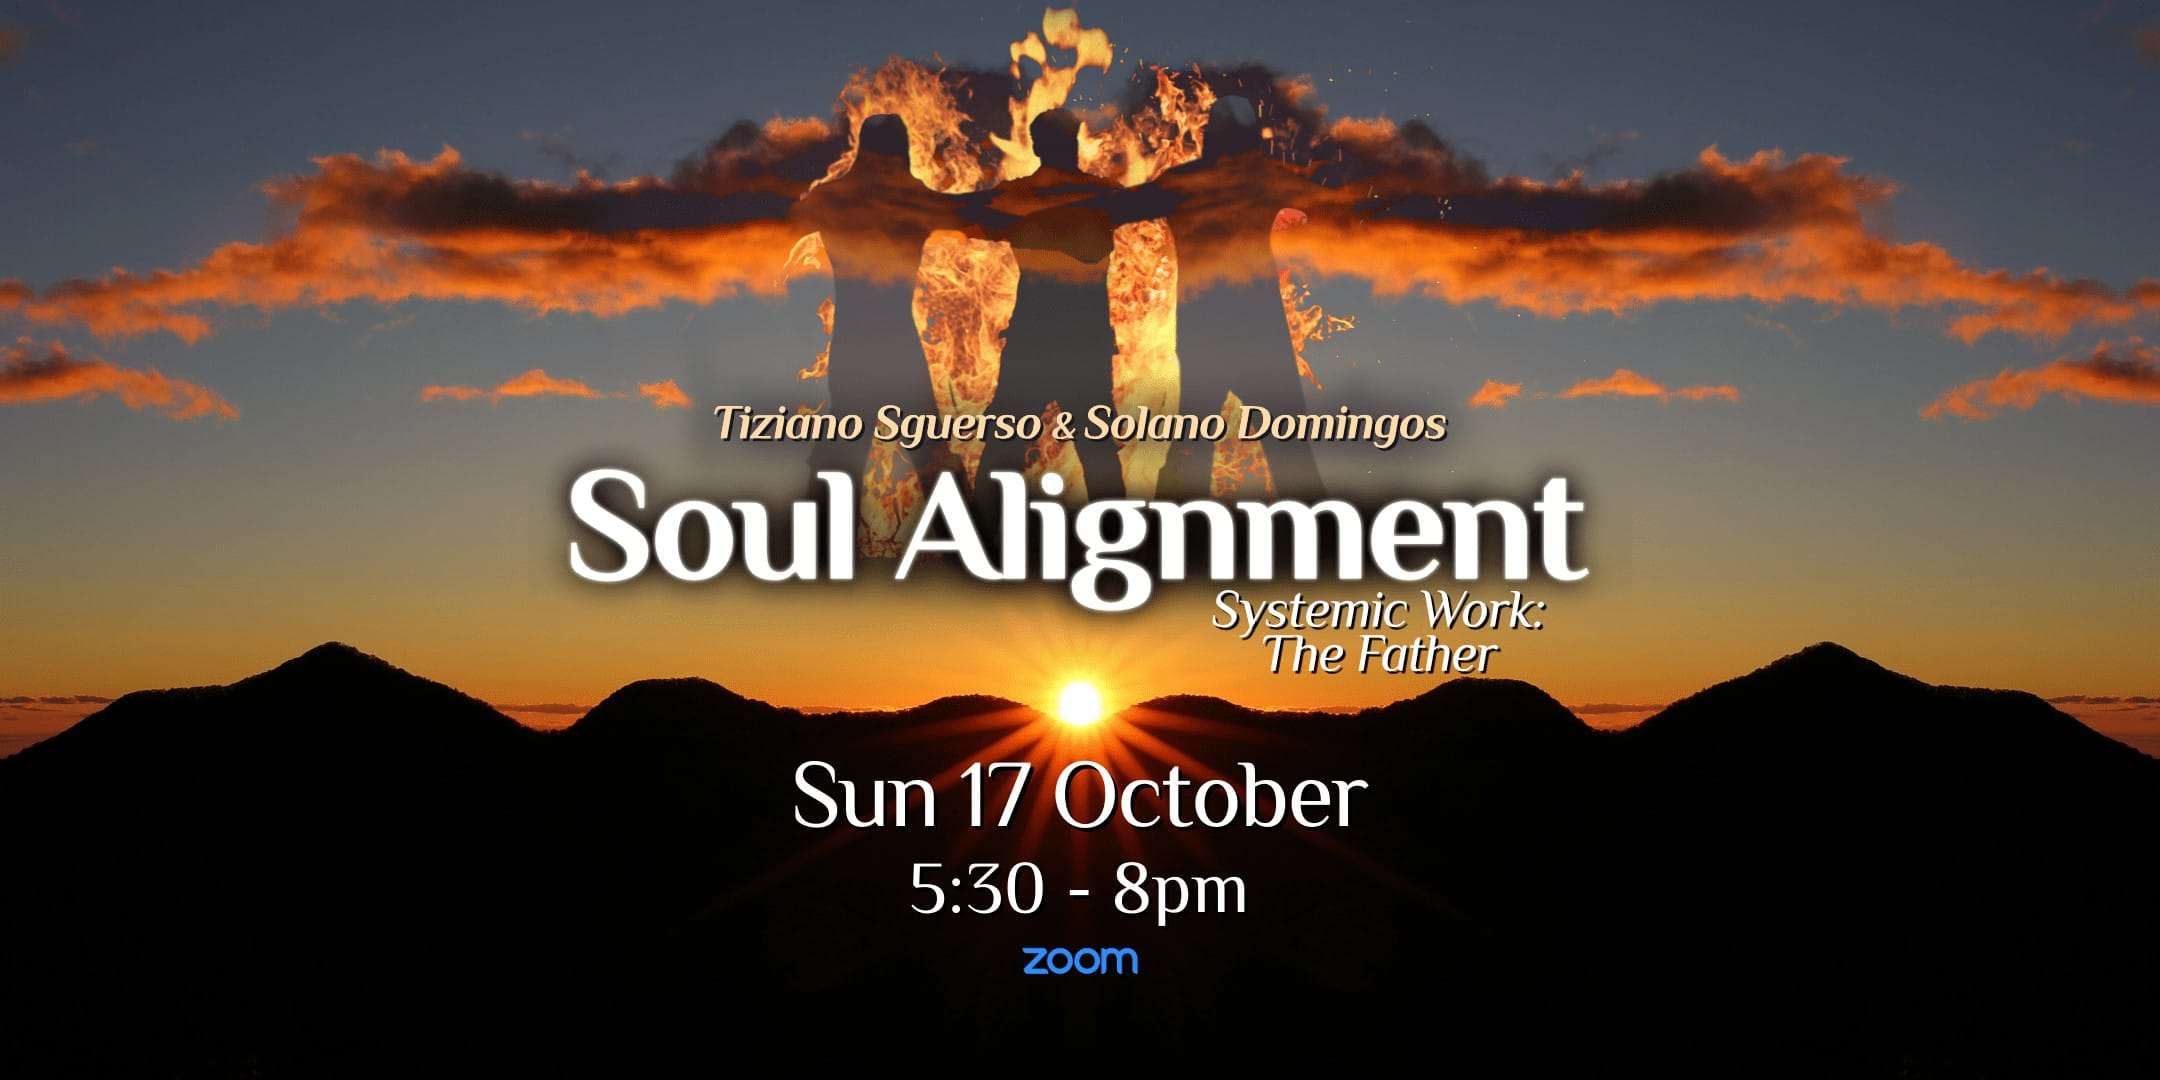 Soul Alignment Systemic Work The Father event thumbnail